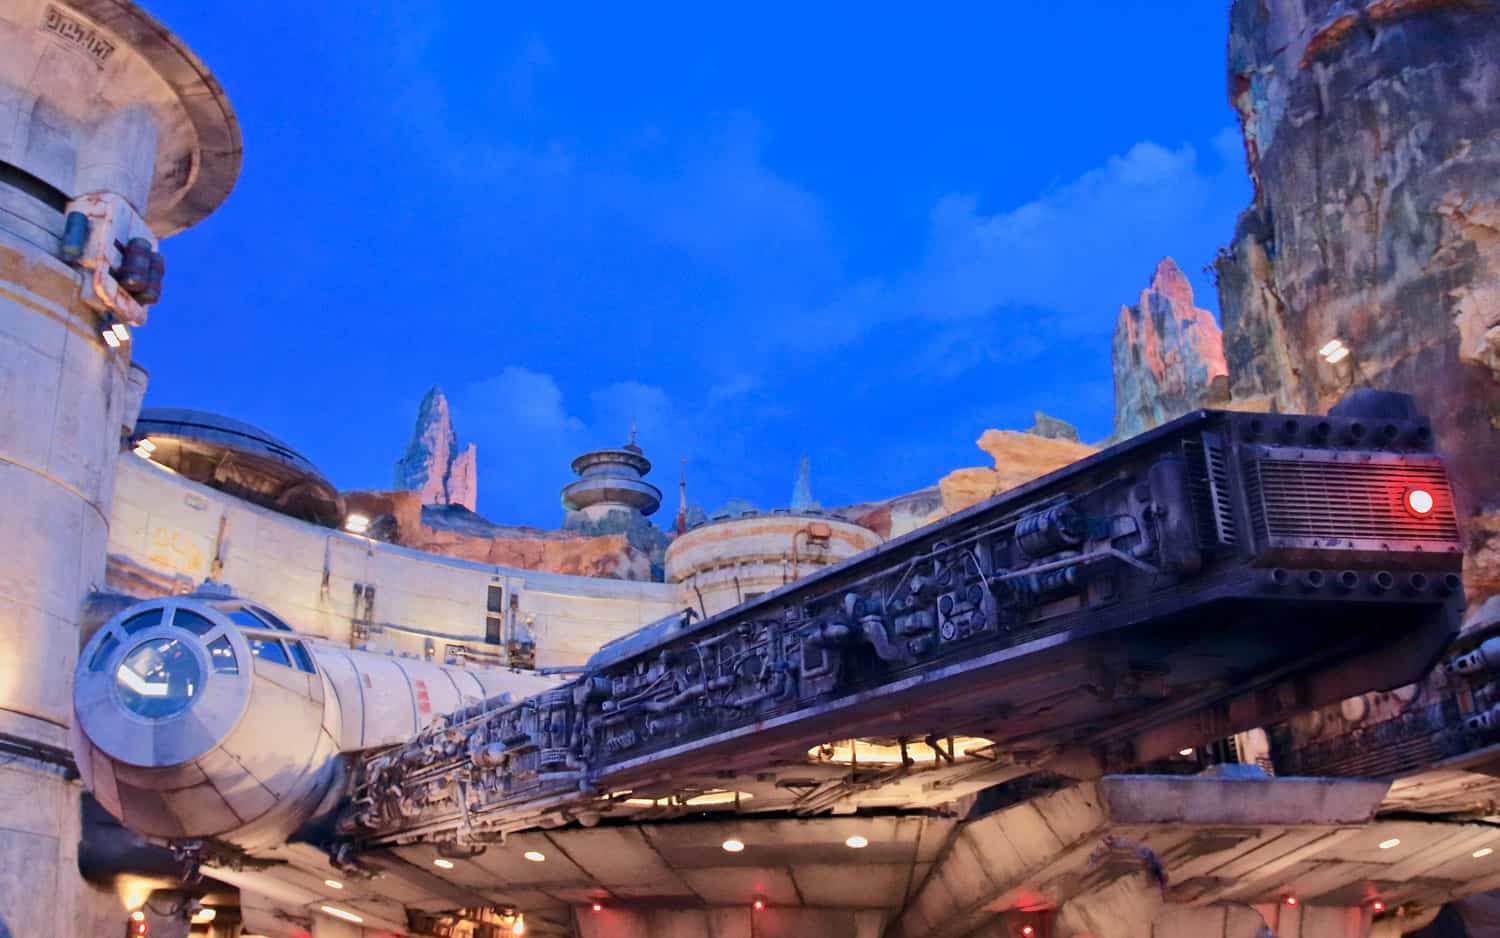 The Exhaustive Guide to Rides at Hollywood Studios 20